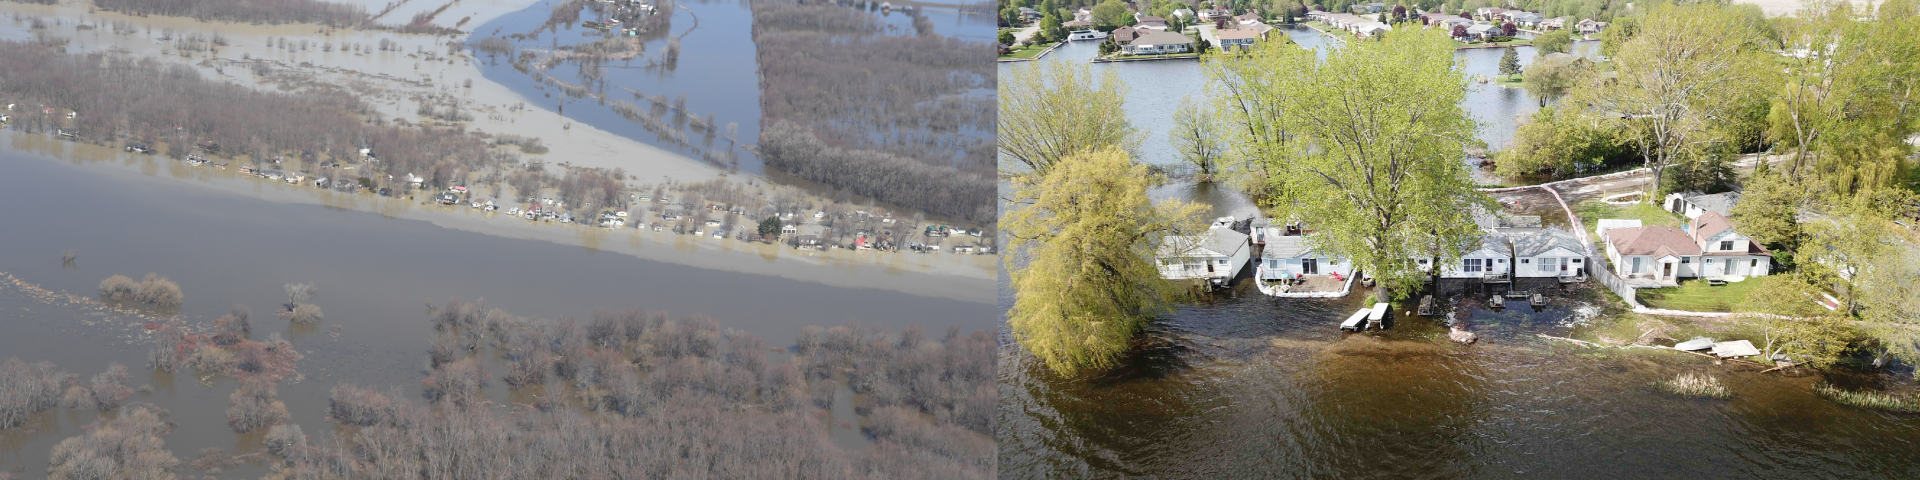 May 2019 St. Lawrence River at Lake Saint-Pierre (left, source: Lower Trent Region Conservation Authority) and Lake Ontario at Brighton (right, source: Transport Canada)